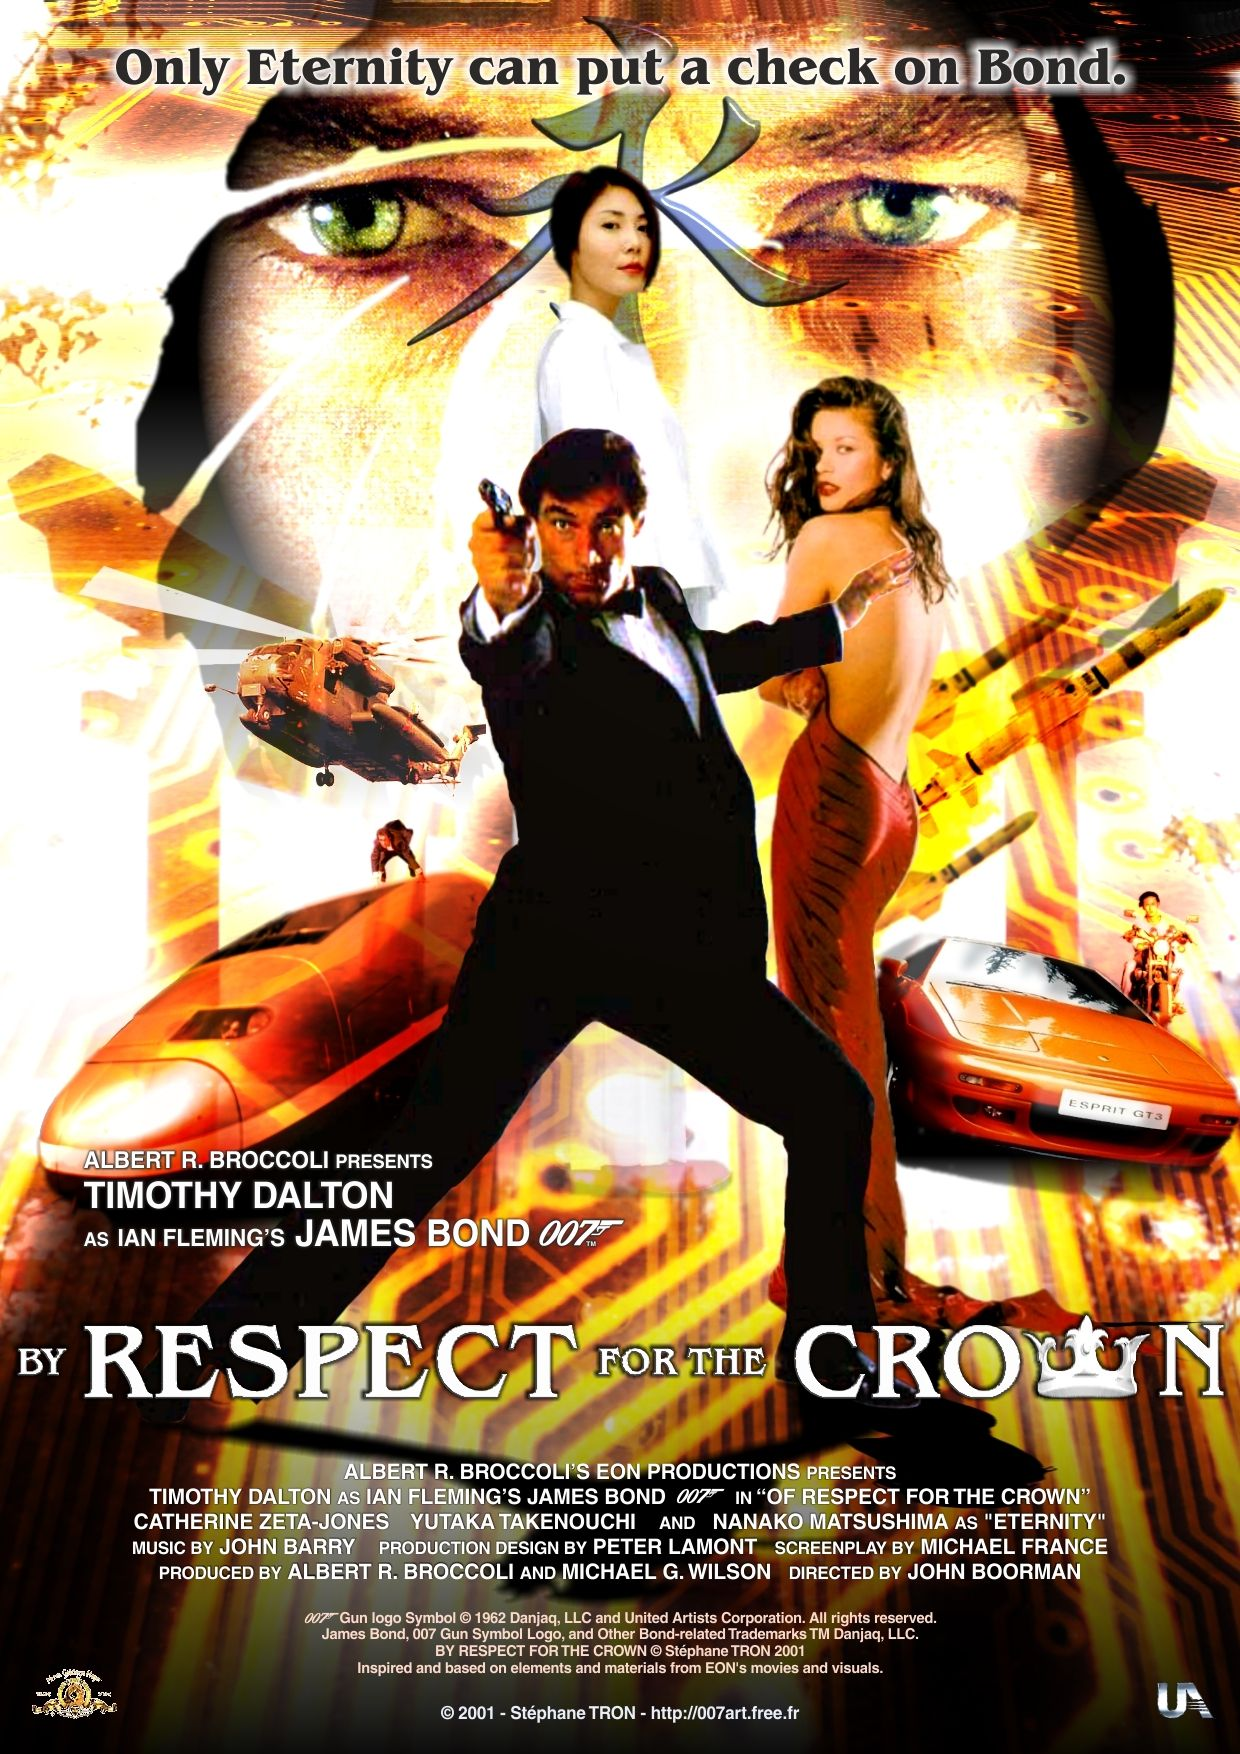 By Respect For The Crown Poster 1 Bond 17 Bond Films